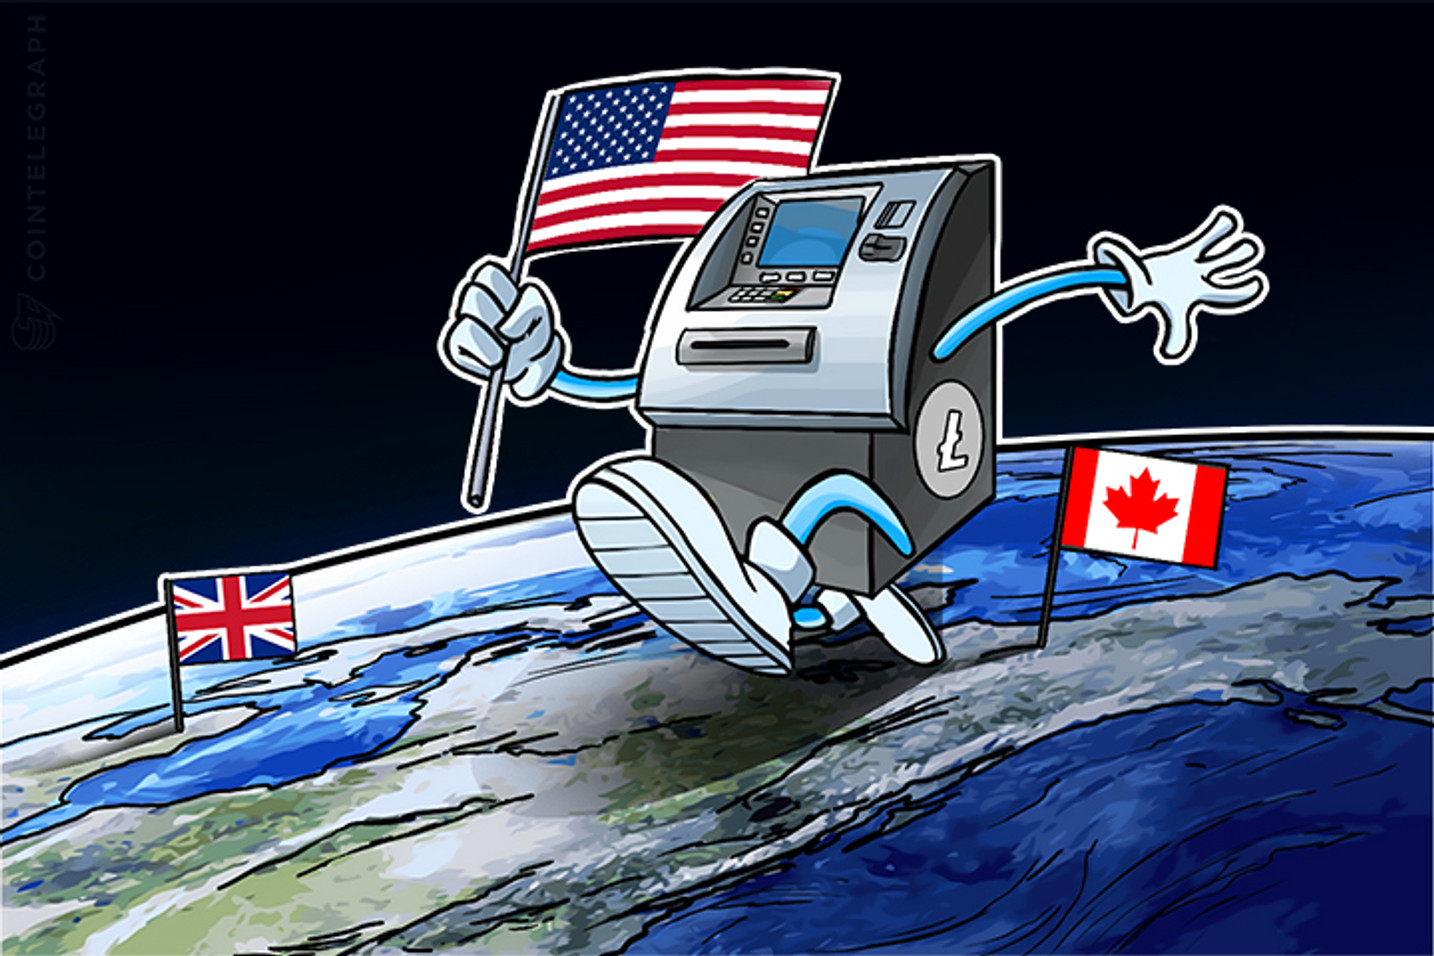 Litecoin Terminals Pop Up Across US, UK and Canada Amidst Surging Demand